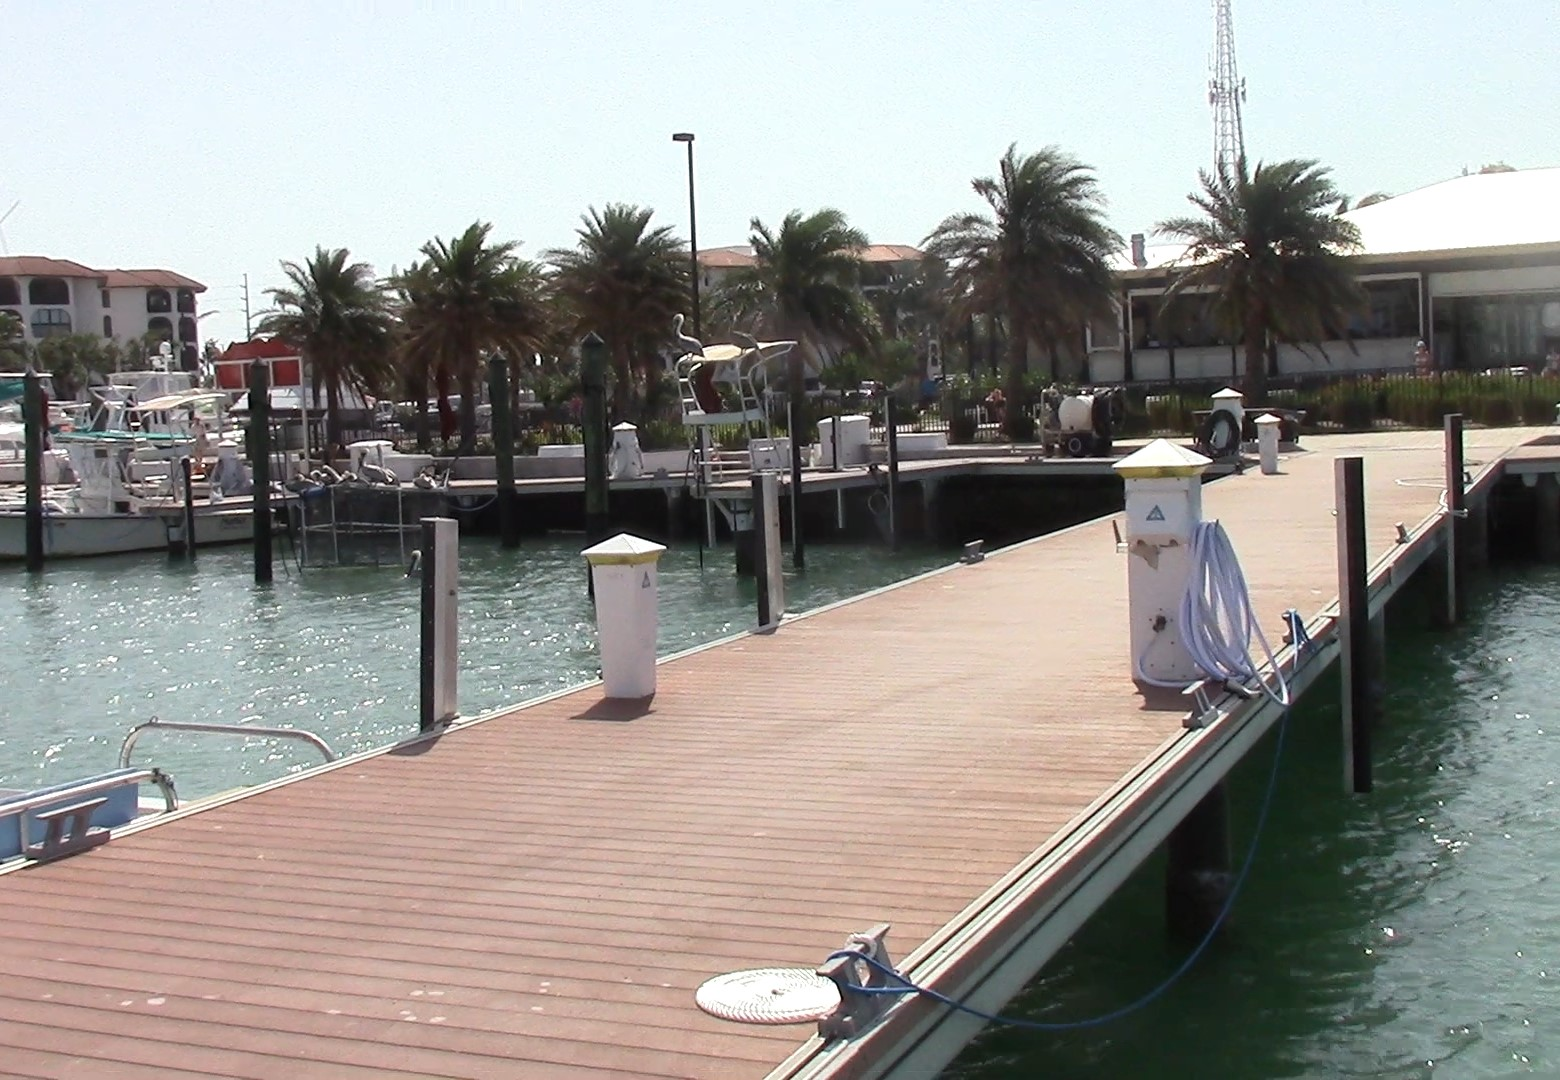 Faro Blanco Marina and their immaculate docks.